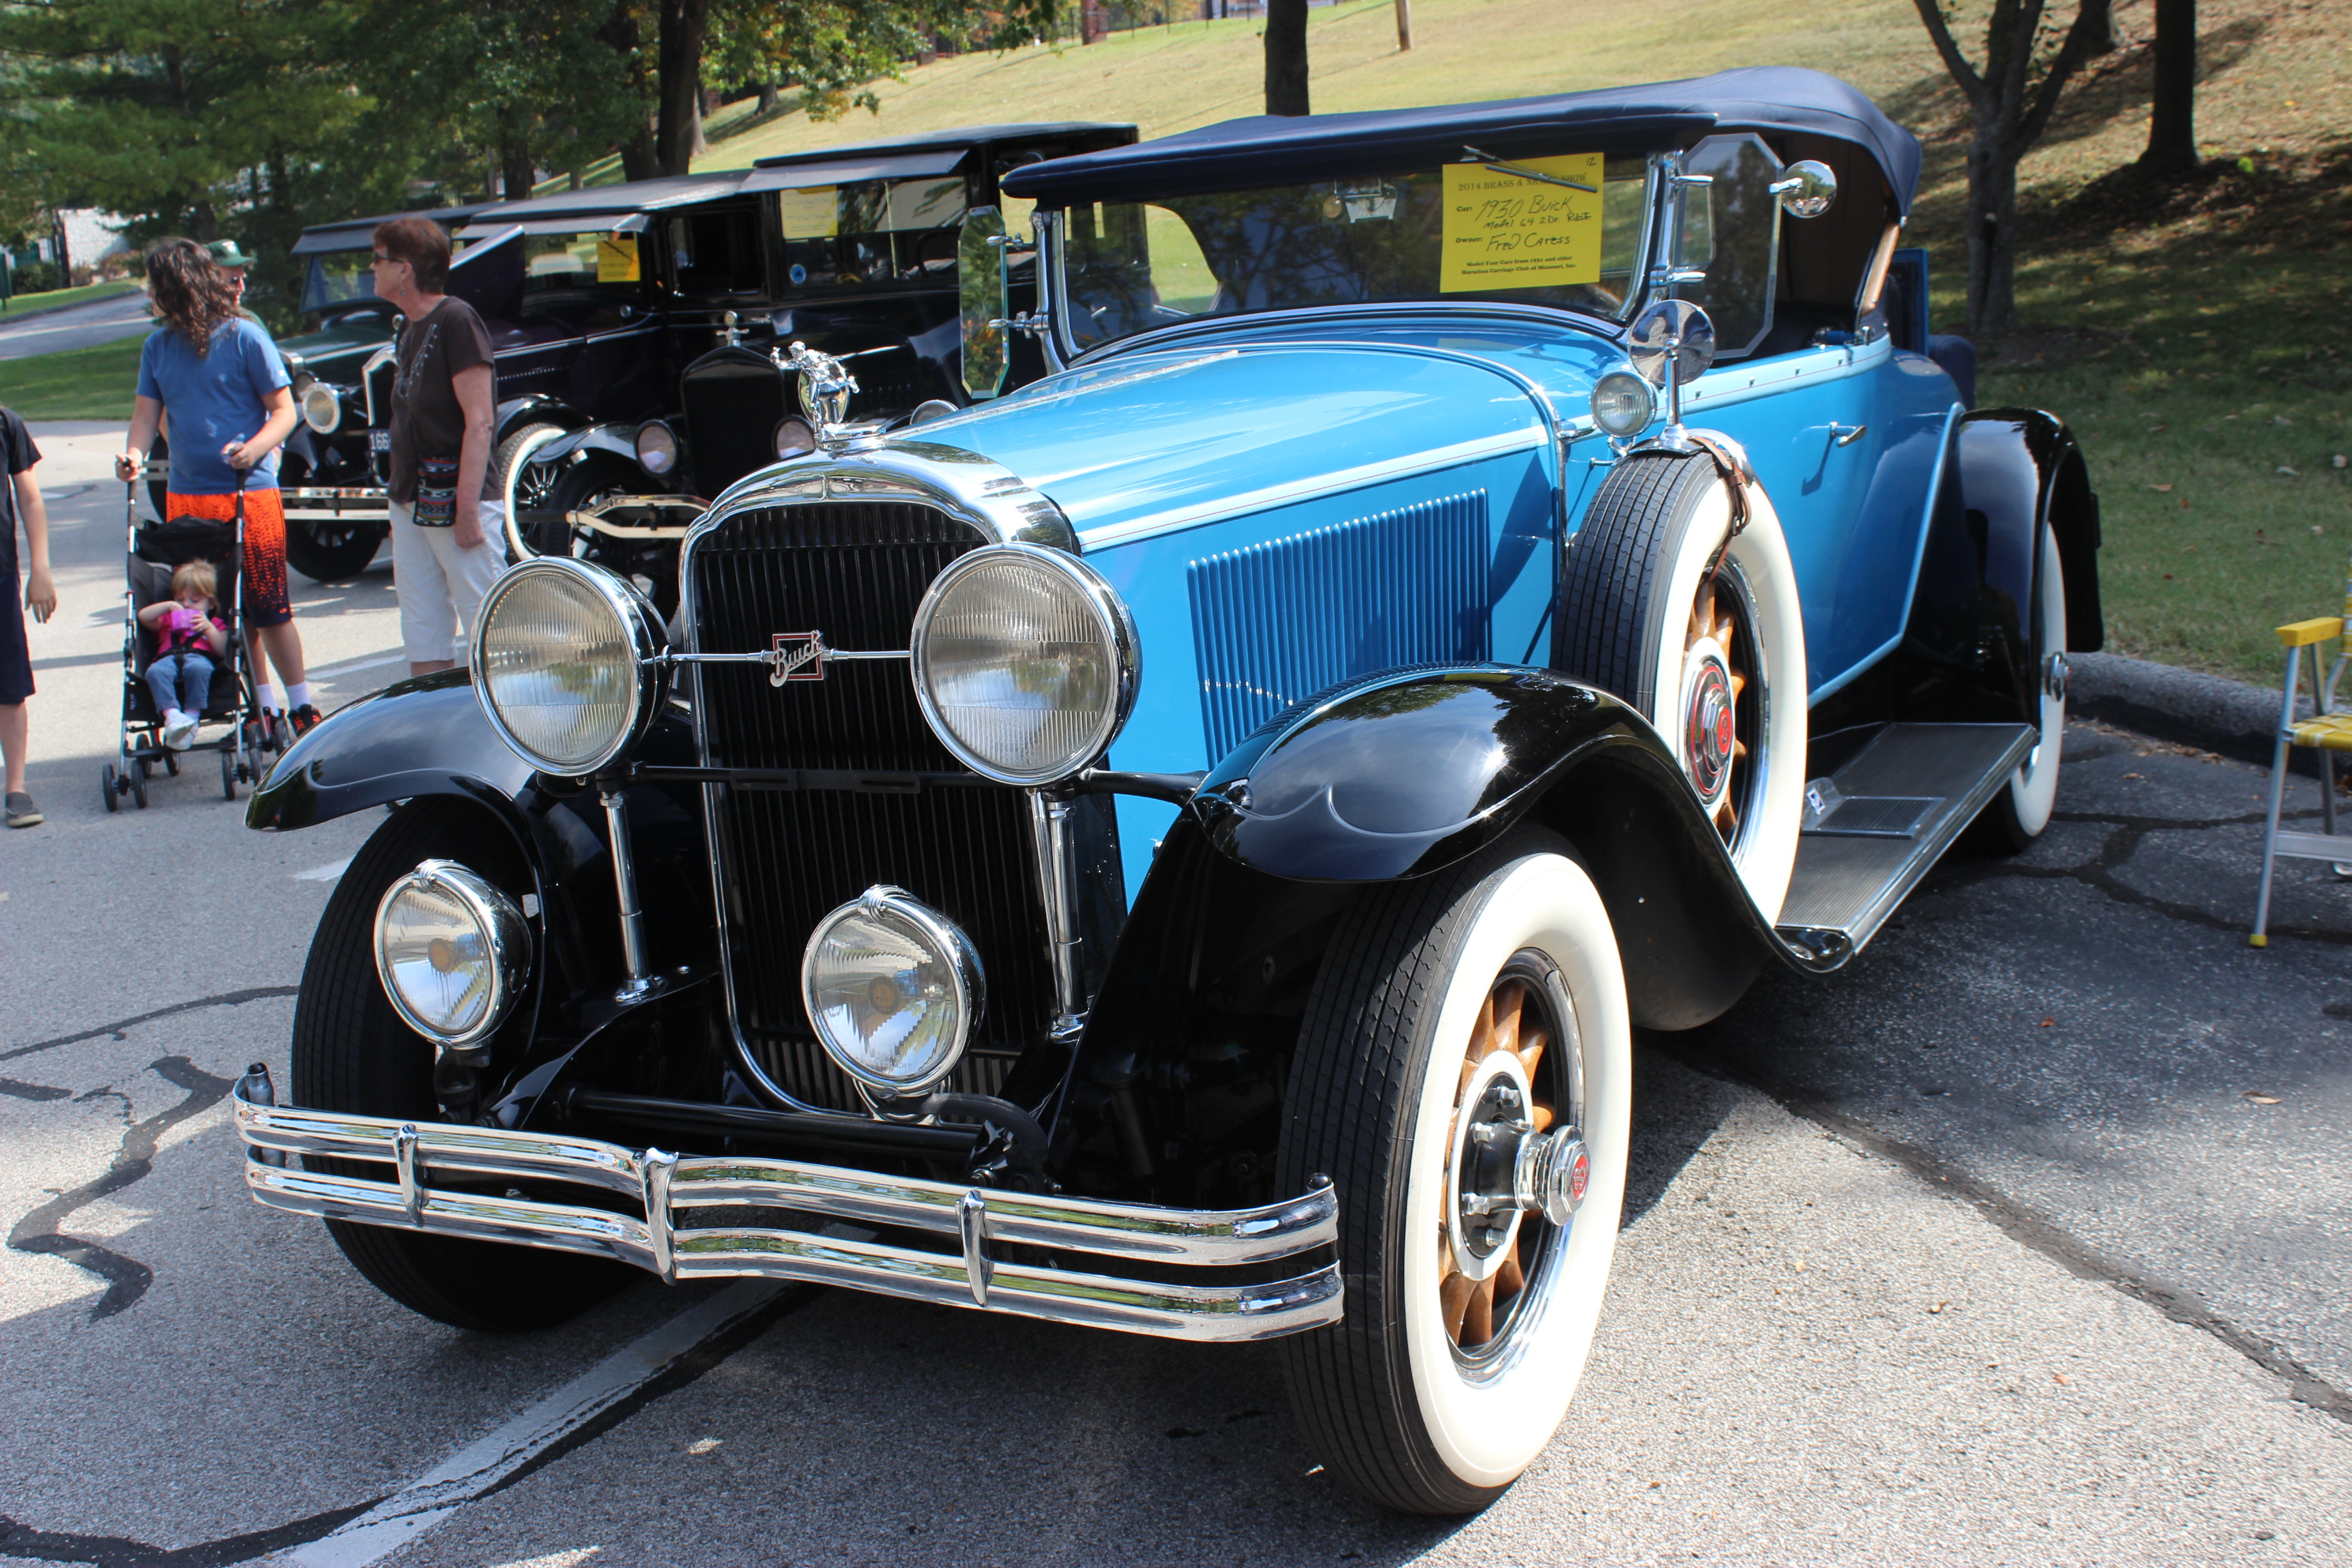 HQ 1930 Buick Roadster Wallpapers | File 2041.03Kb